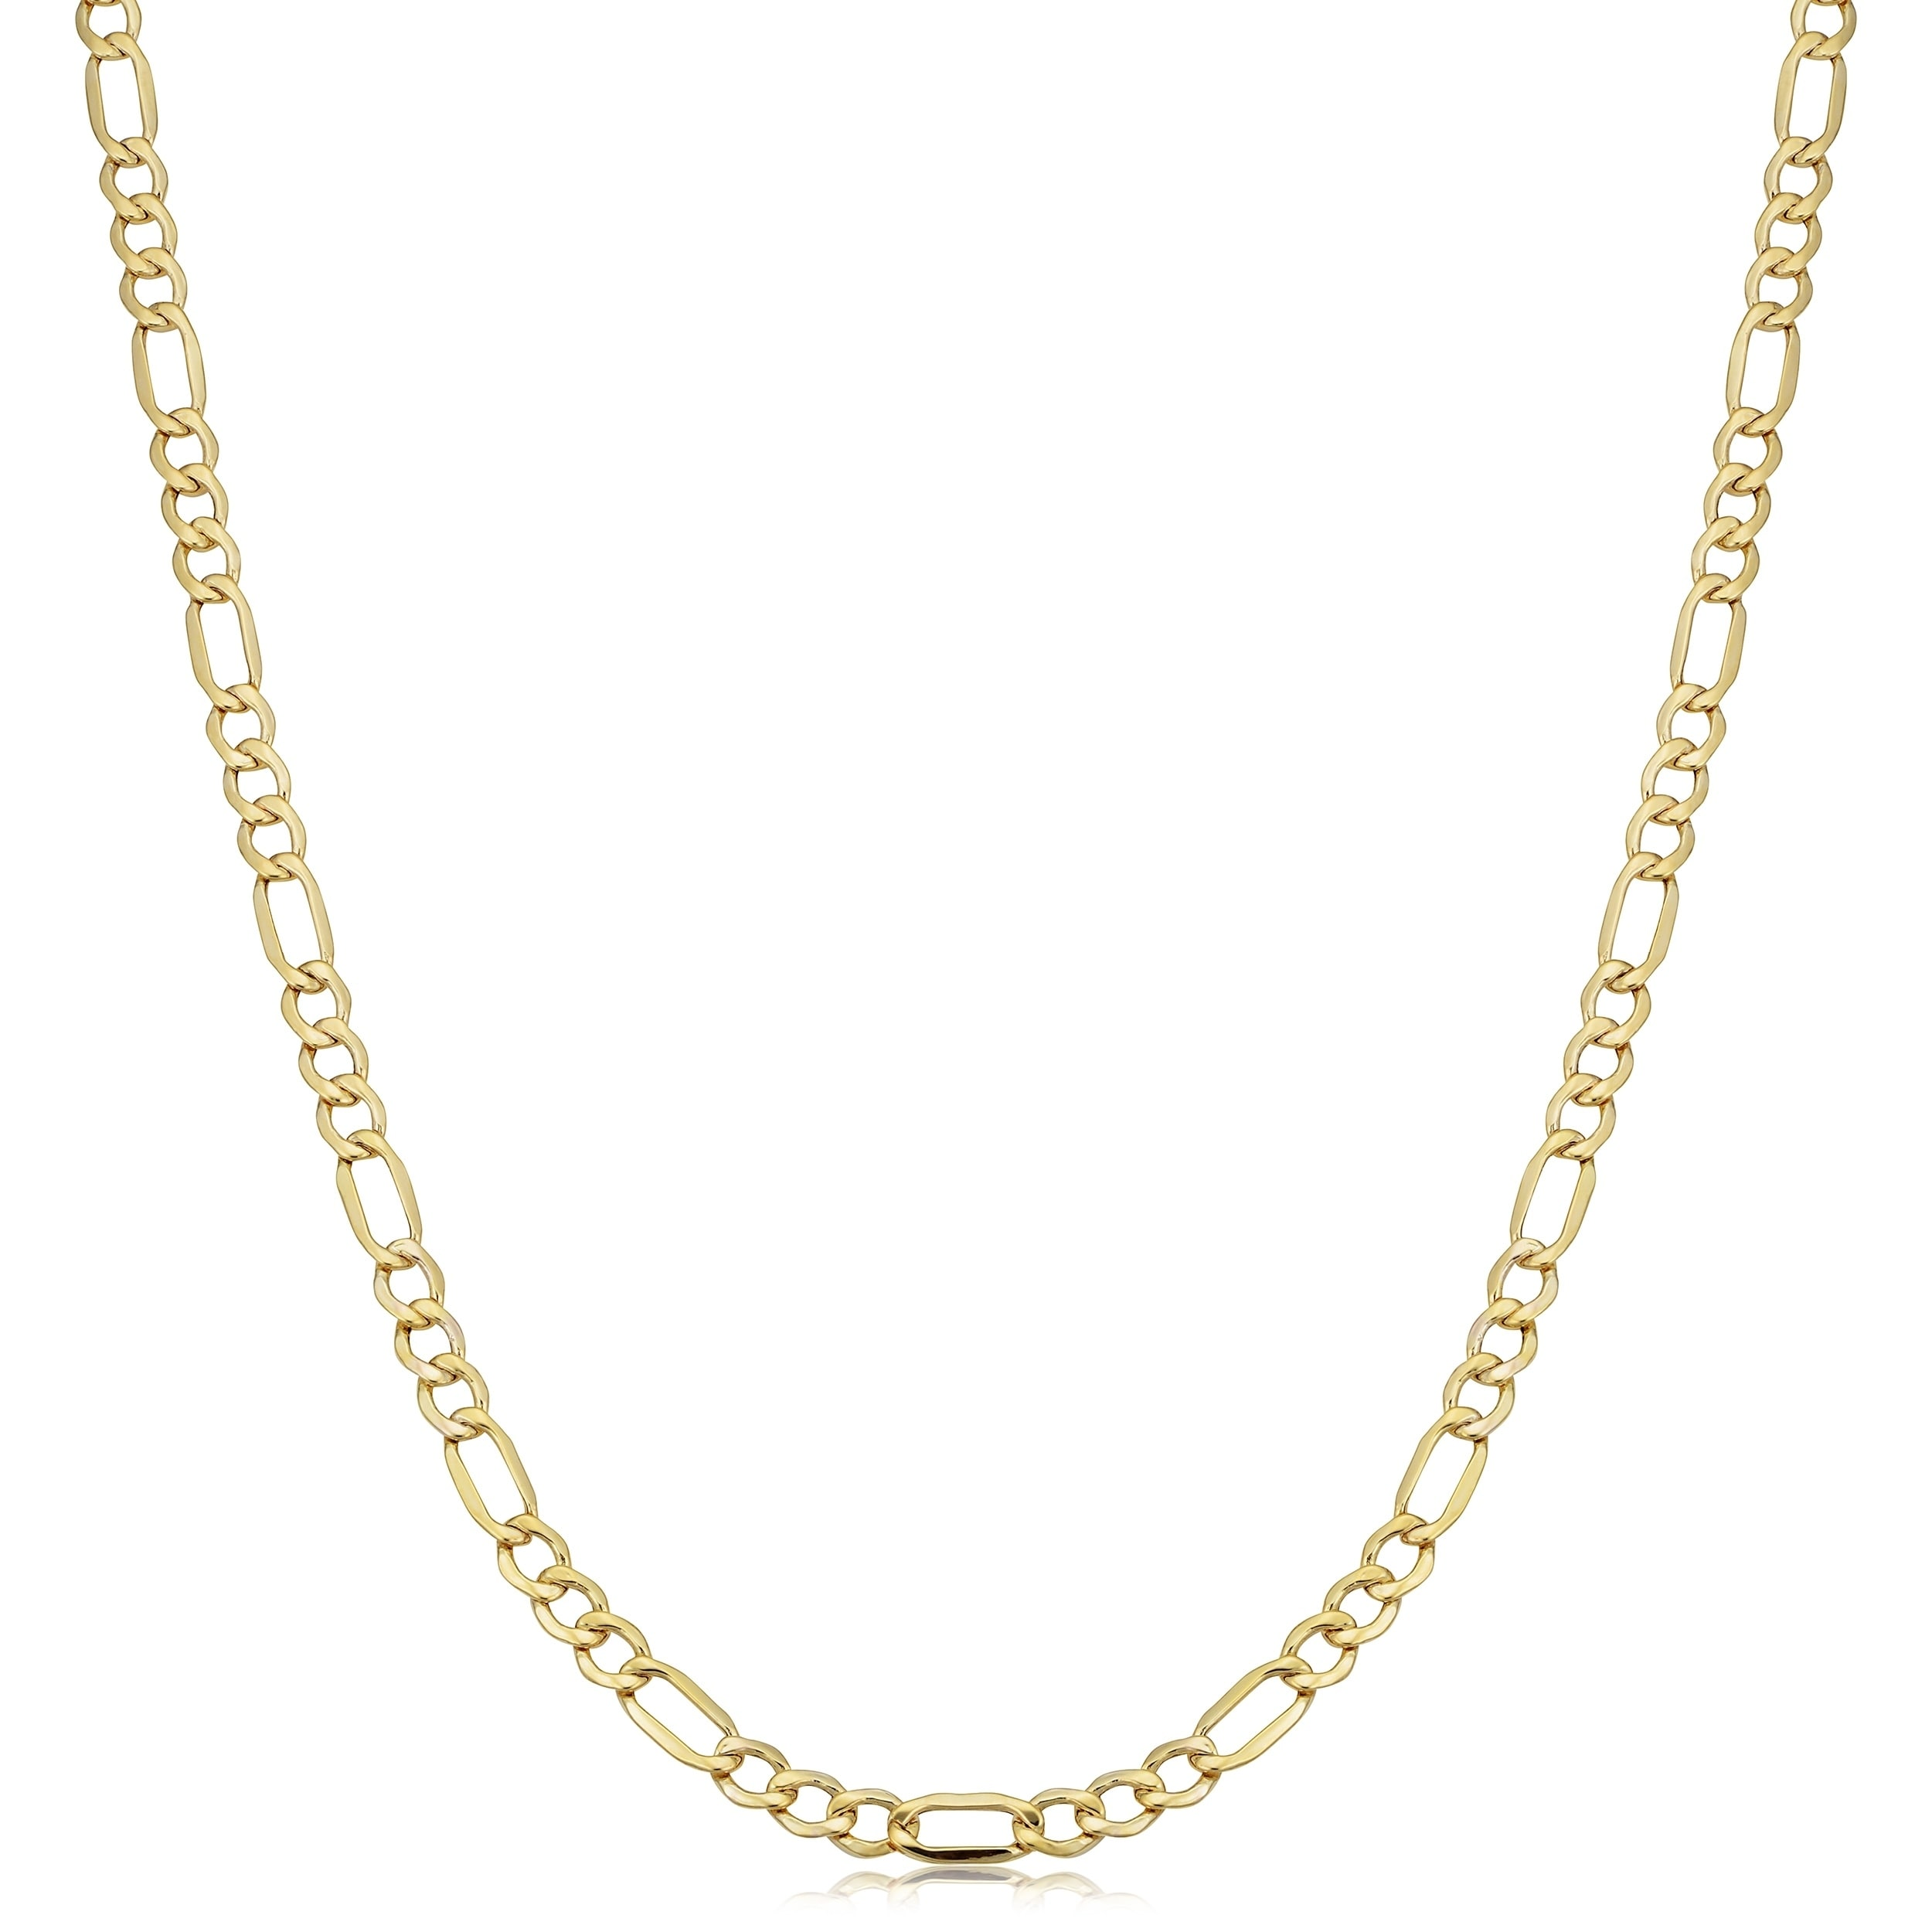 Men/'s Women/'s Ladies Real 10k Gold Figaro Hollow Chain 2.5 mm 18-24 inch